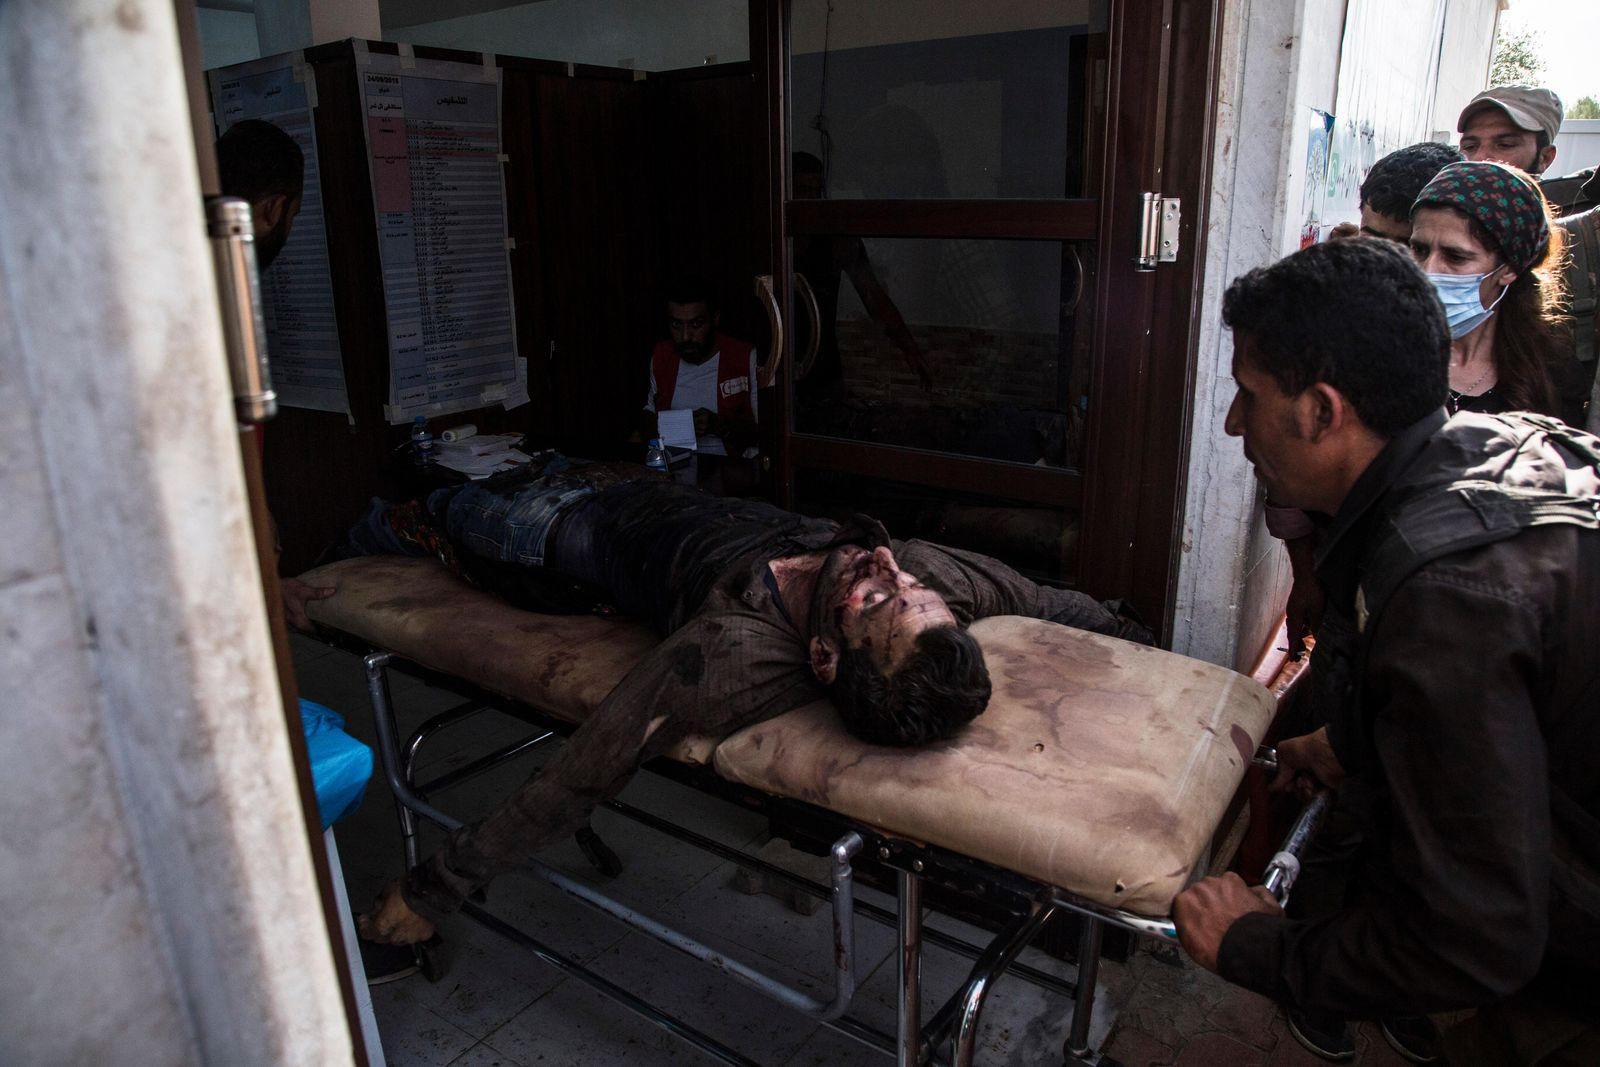 A man wounded in Turkish shelling is brought to Tal Tamr hospital in north Syria, Monday, Oct. 14, 2019. (AP Photo/Baderkhan Ahmad)